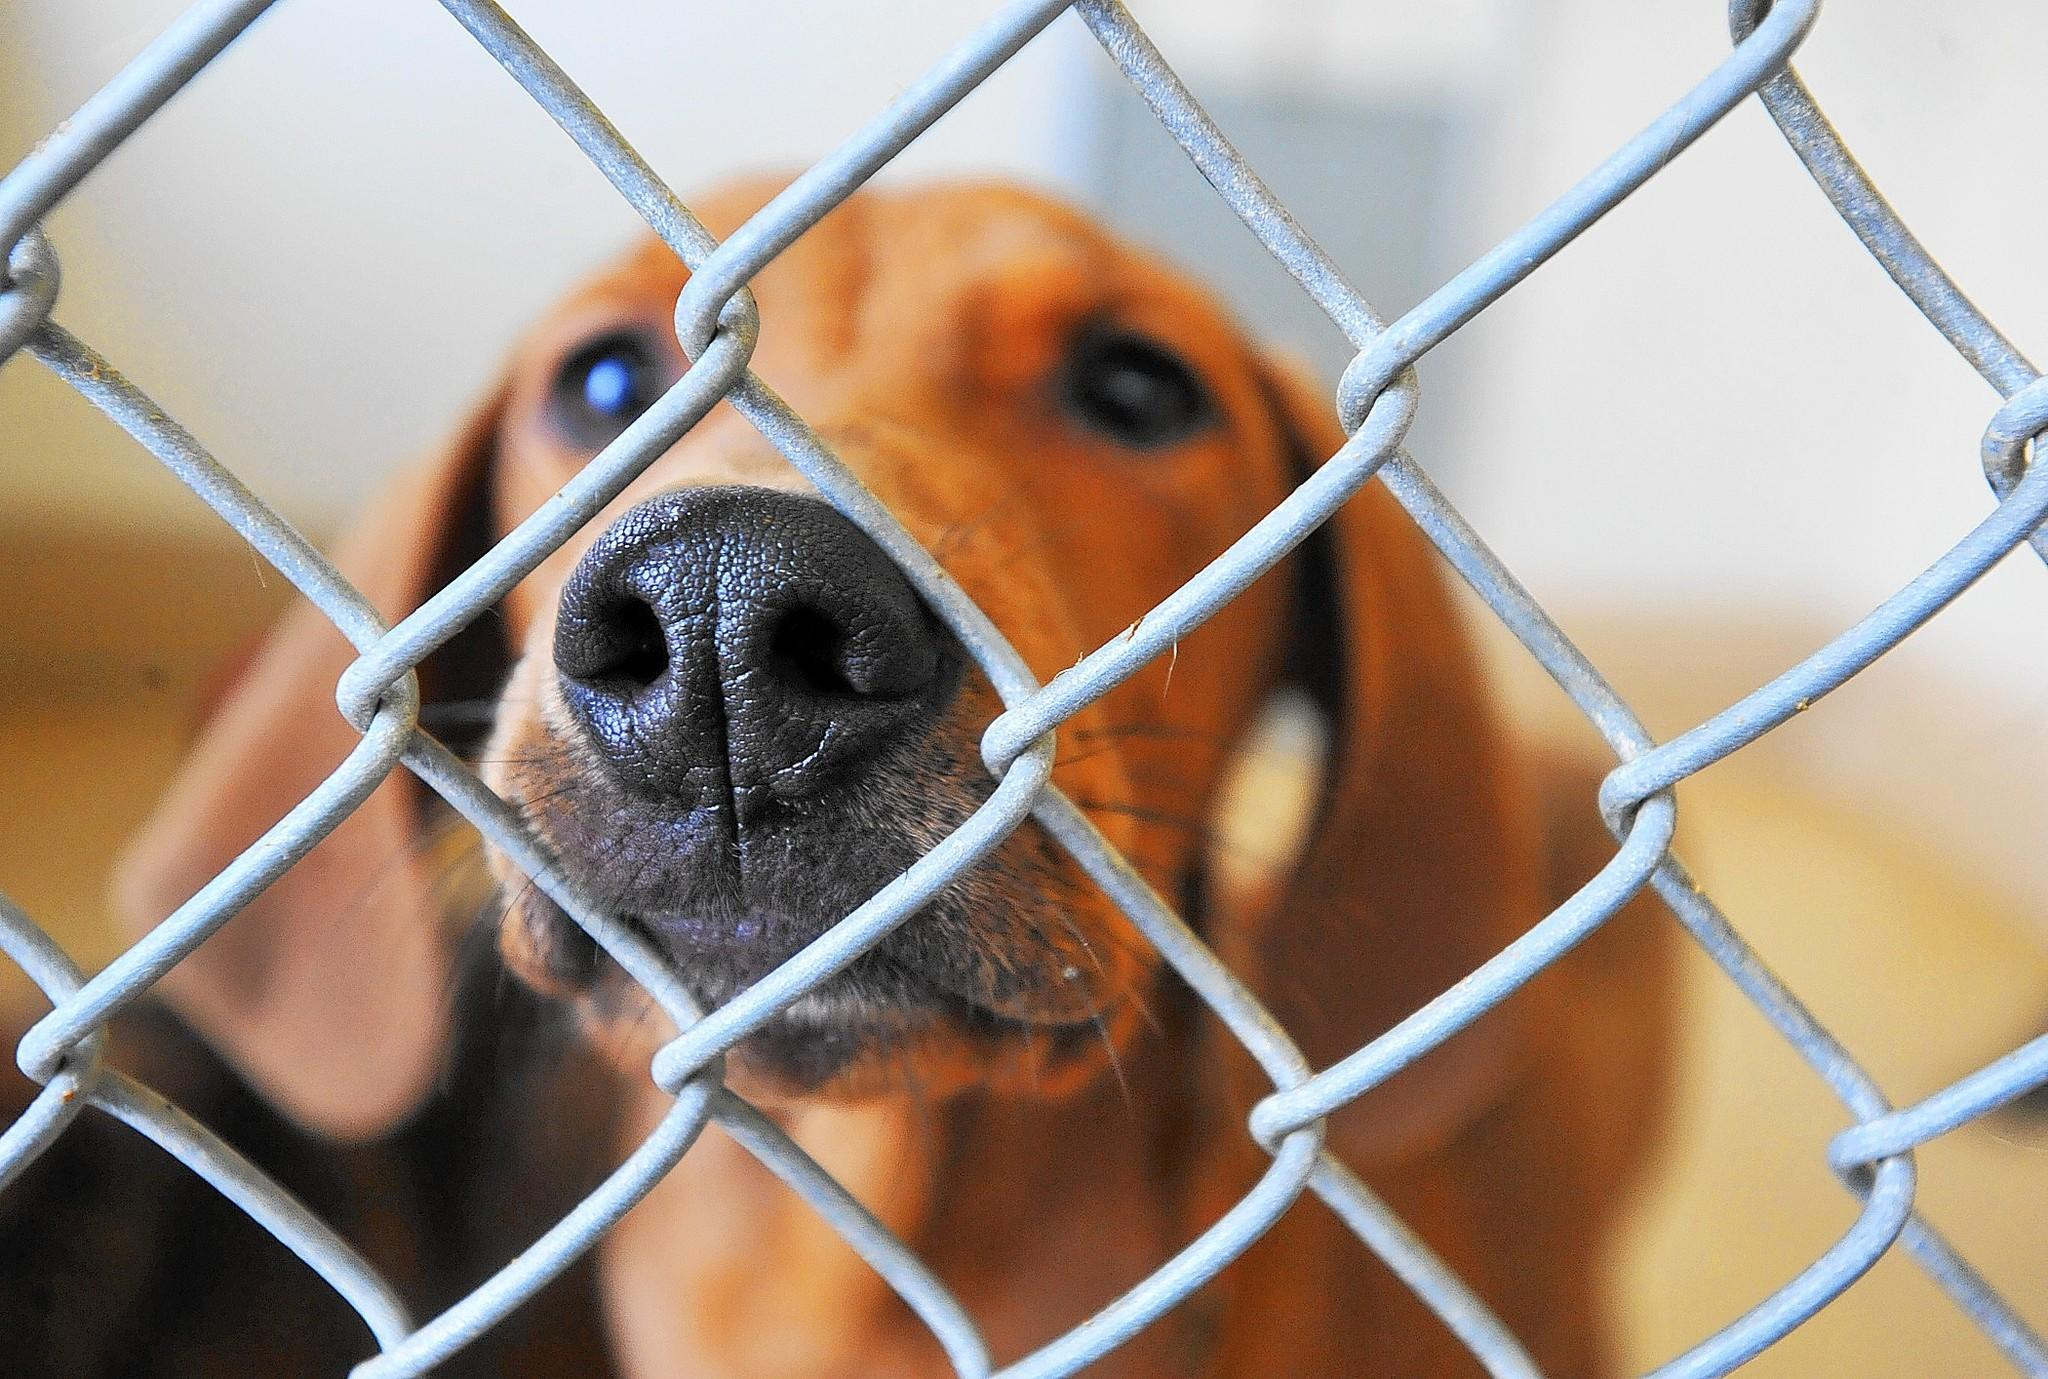 Animal rights' lawsuit targets Pennsylvania's use of wire mesh floors in dog cages.